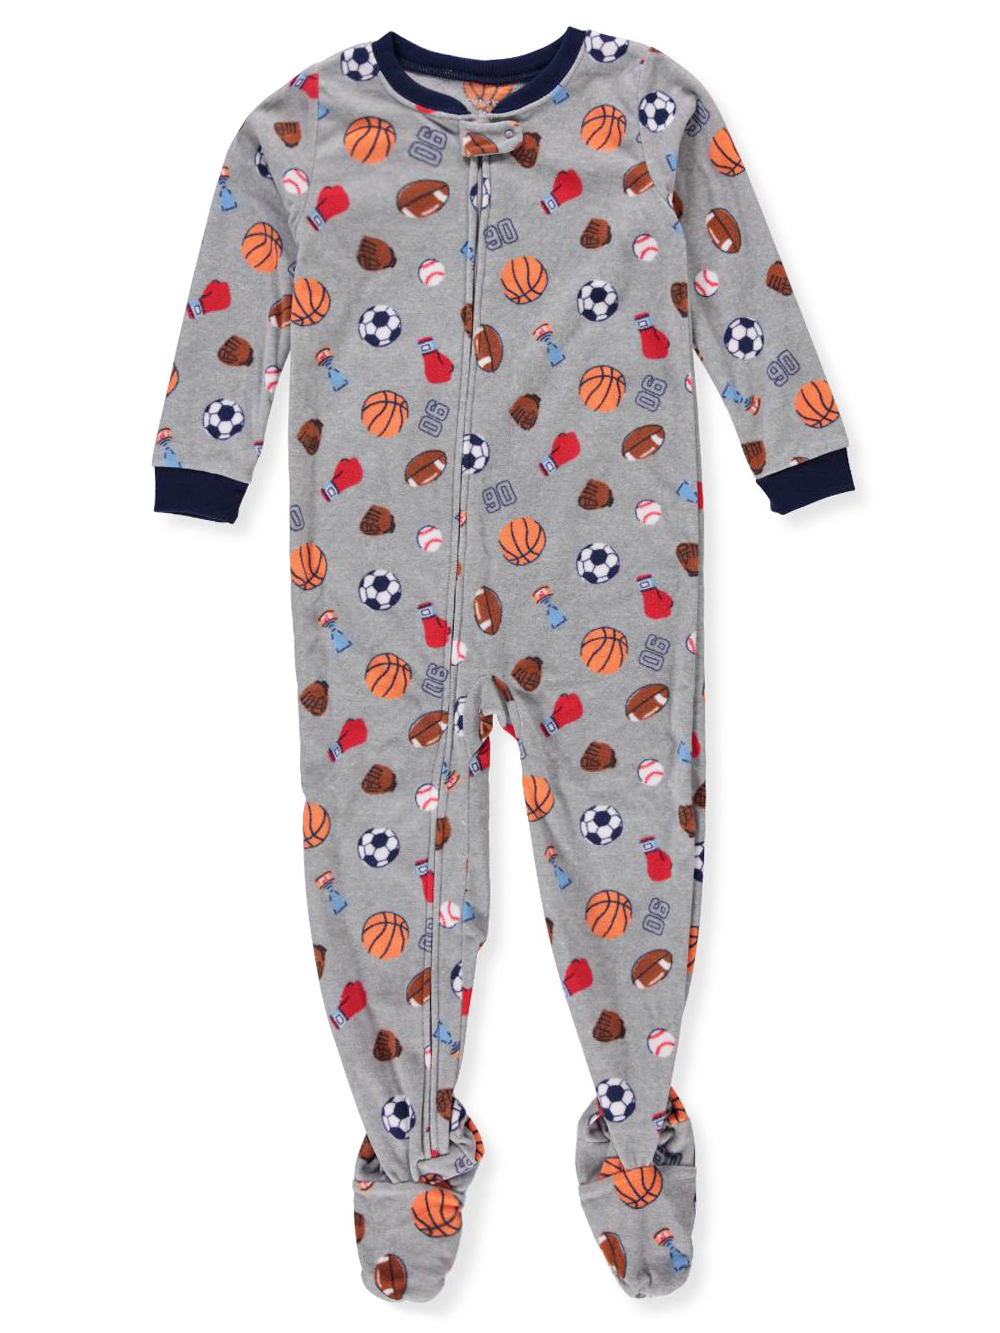 fb9813bfa Boys' 1-Piece Footed Pajamas by Carter's in Gray multi from Cookie's ...